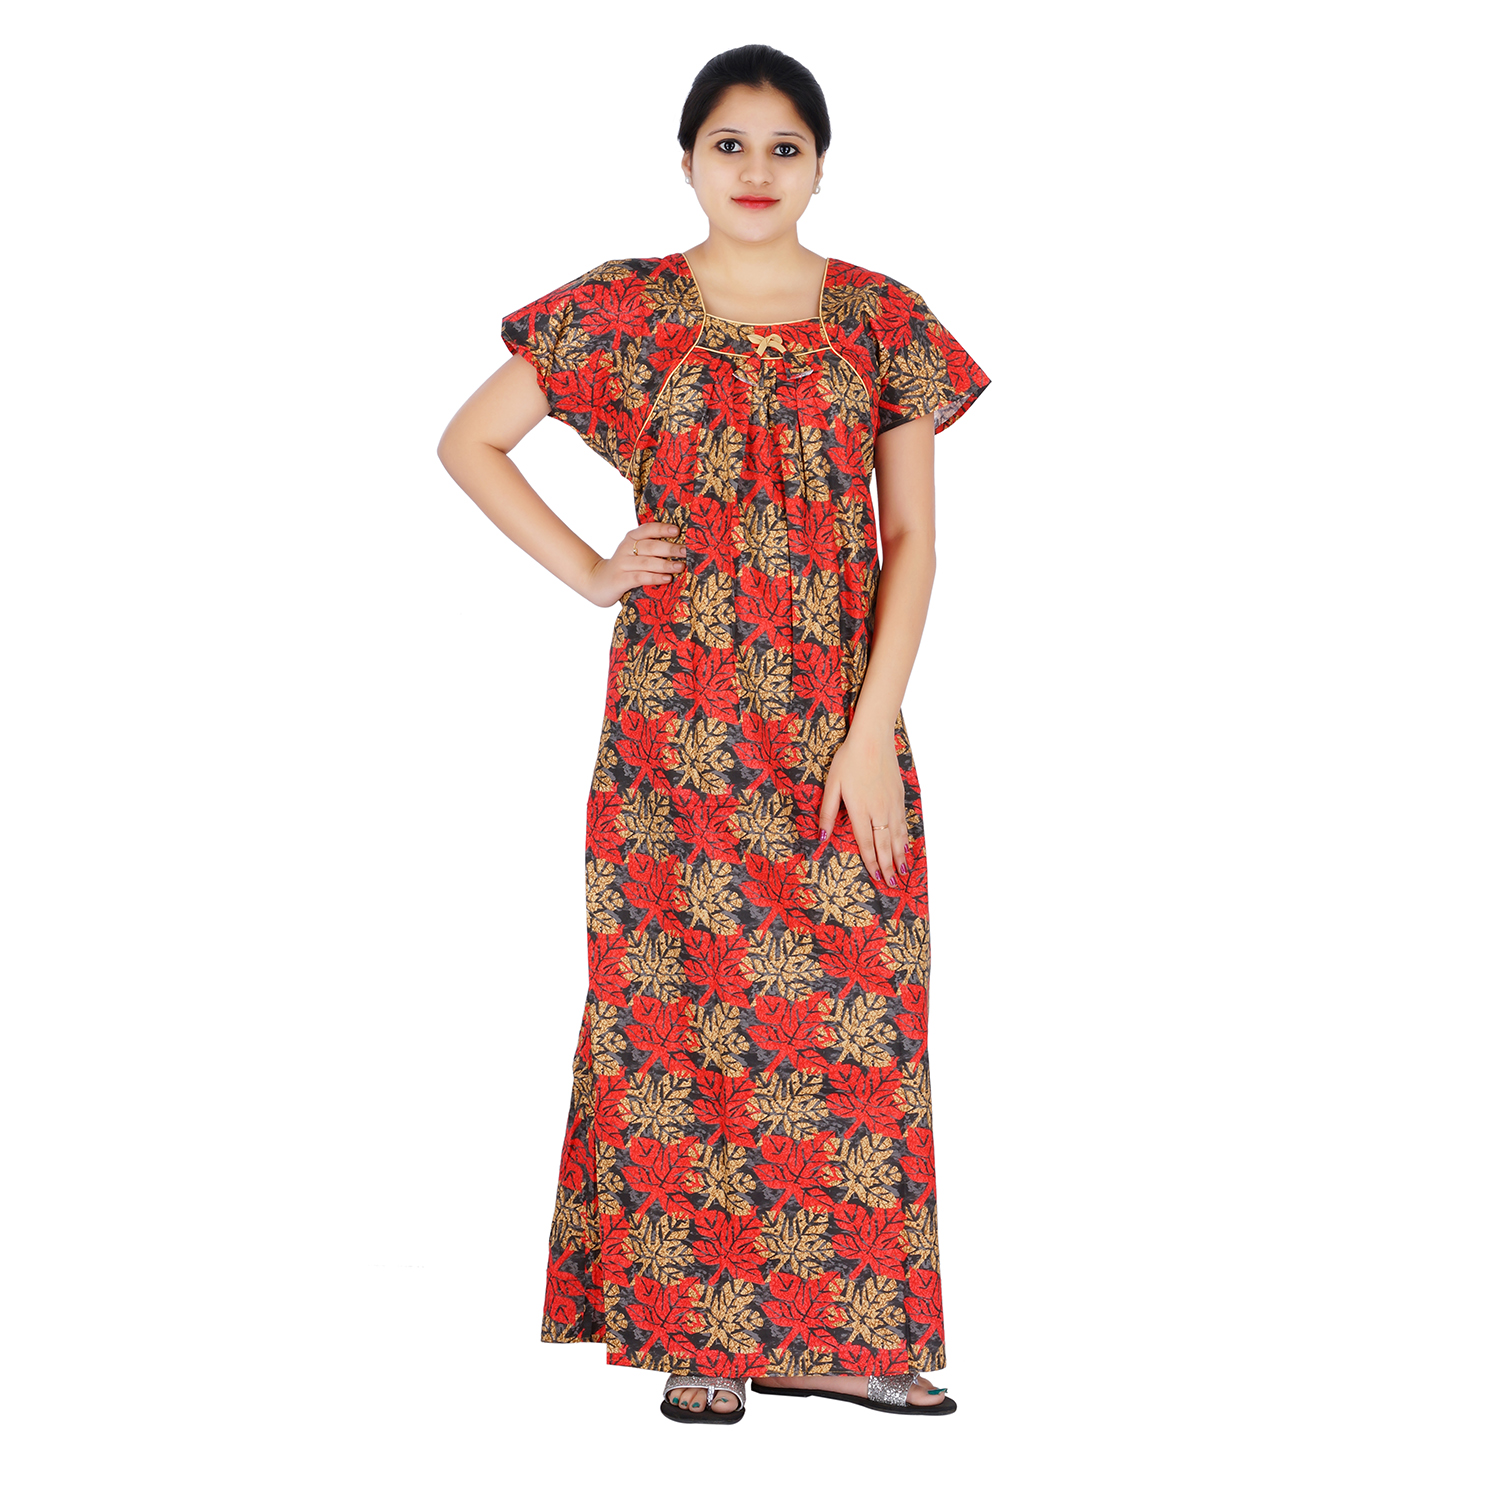 Red and Brown colour Floral Design Printed Square neck cotton nighty for  Ladies Full Length Night Gown - One Stop Fashion - 2569747 cc3526ce7